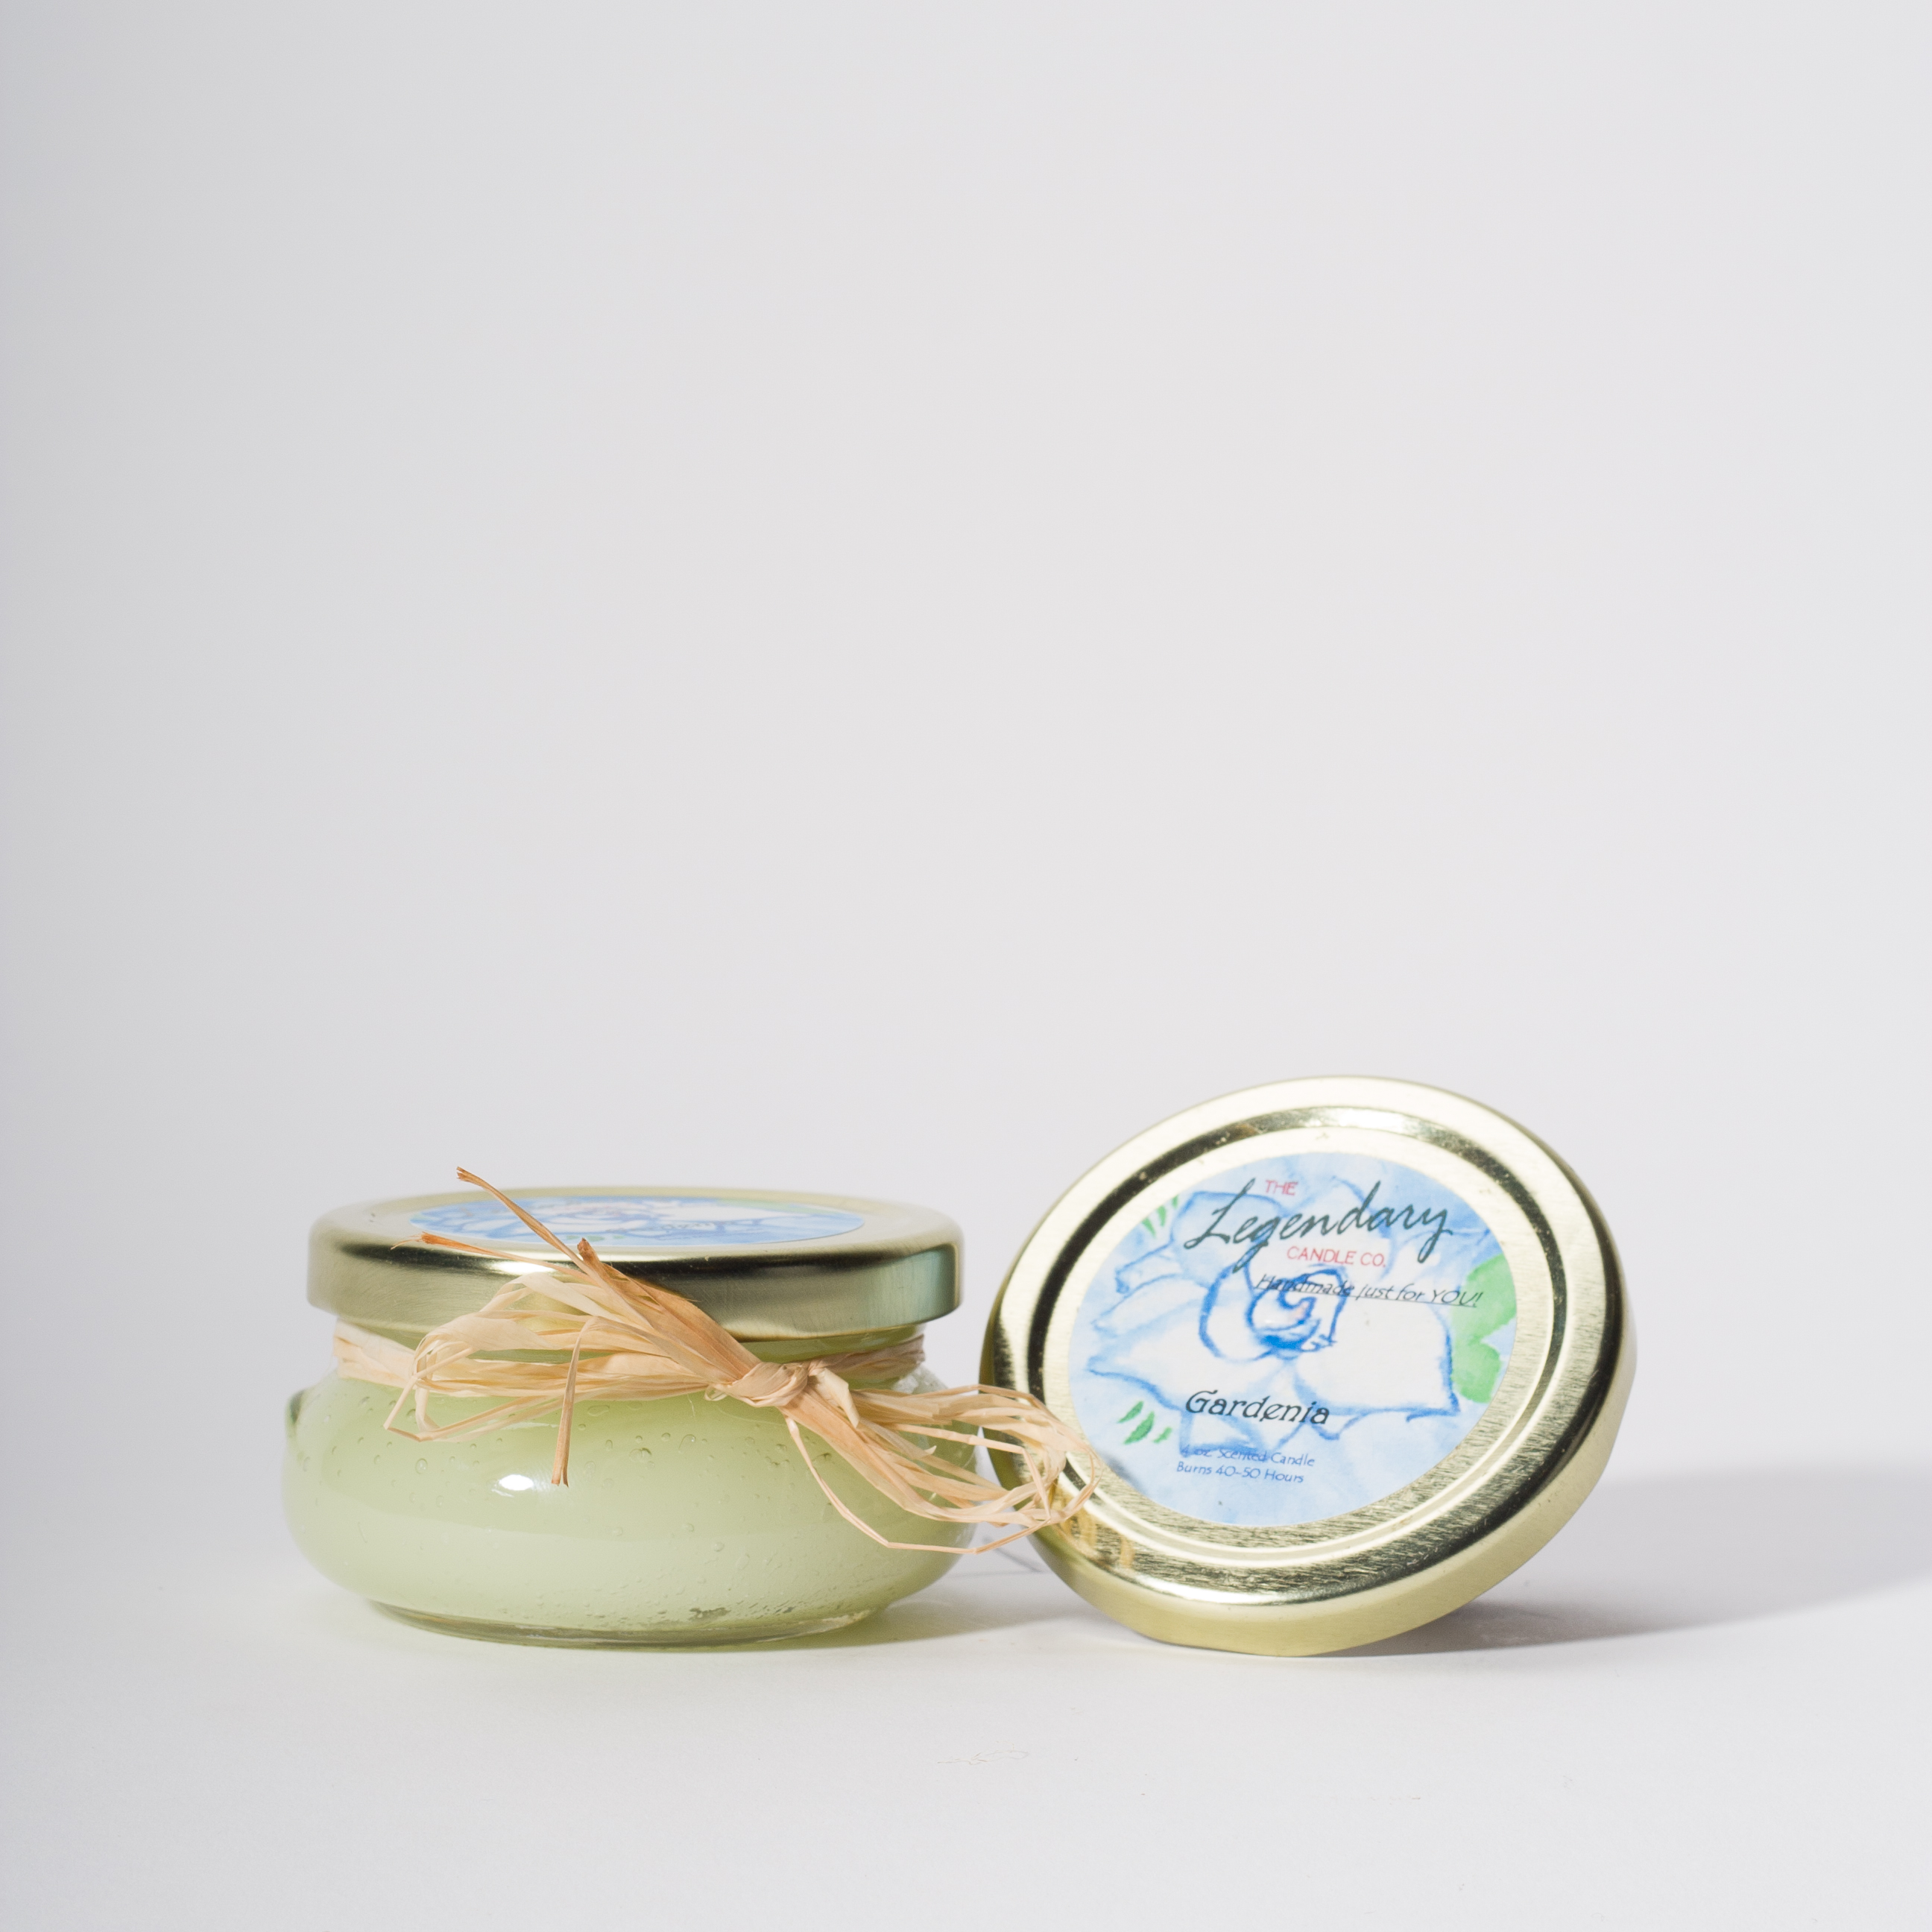 4 Ounce Gardenia Scented Tureen Jar Candle